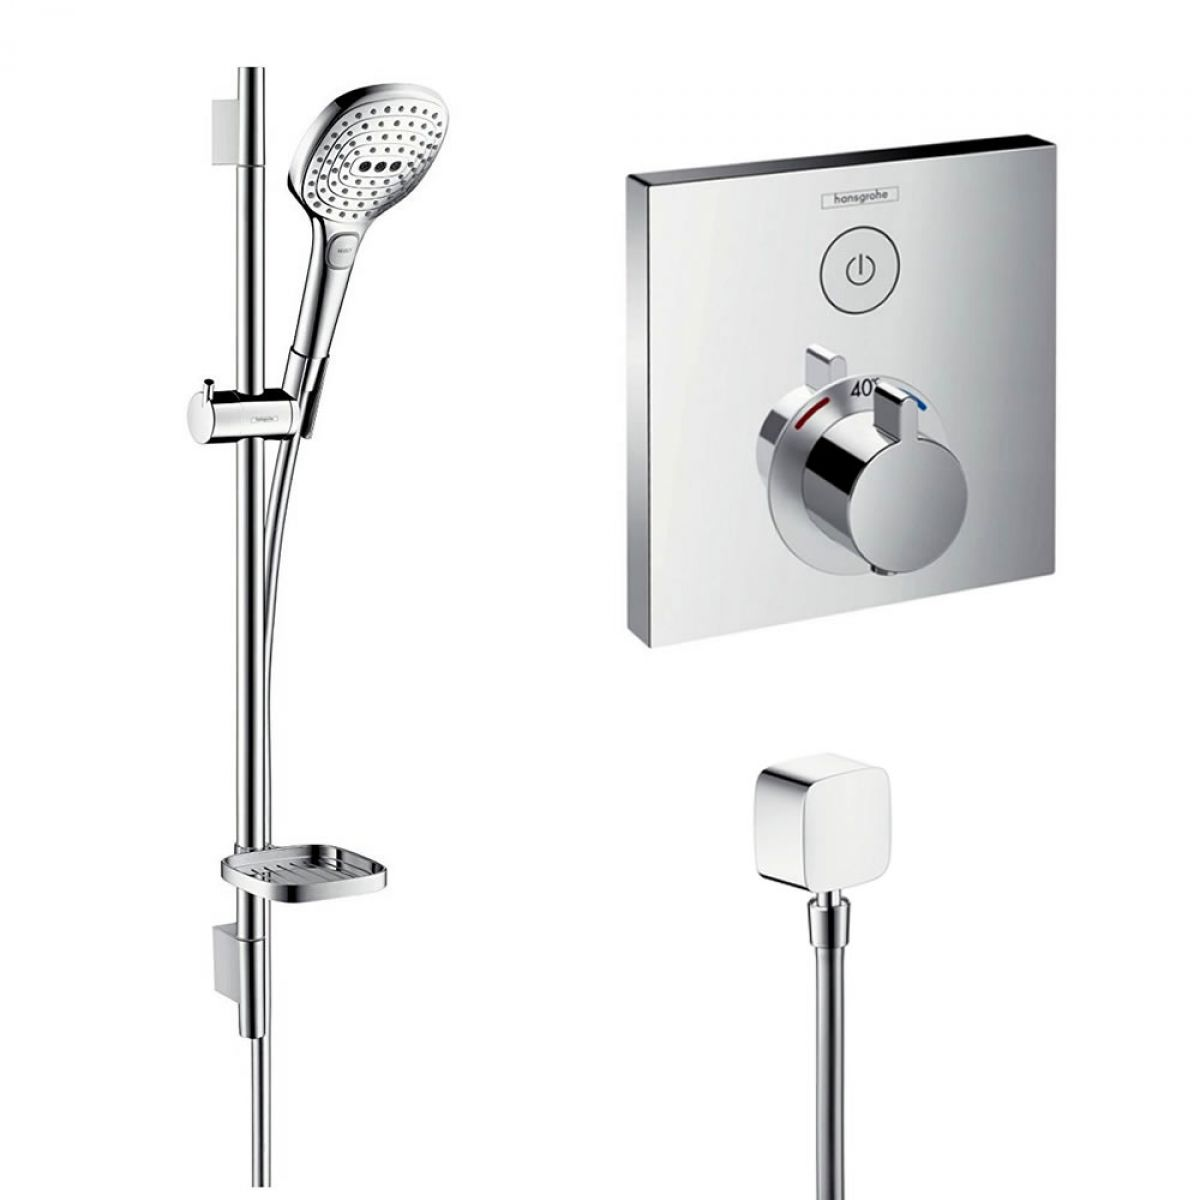 hansgrohe raindance select system 2 shower kit uk bathrooms. Black Bedroom Furniture Sets. Home Design Ideas